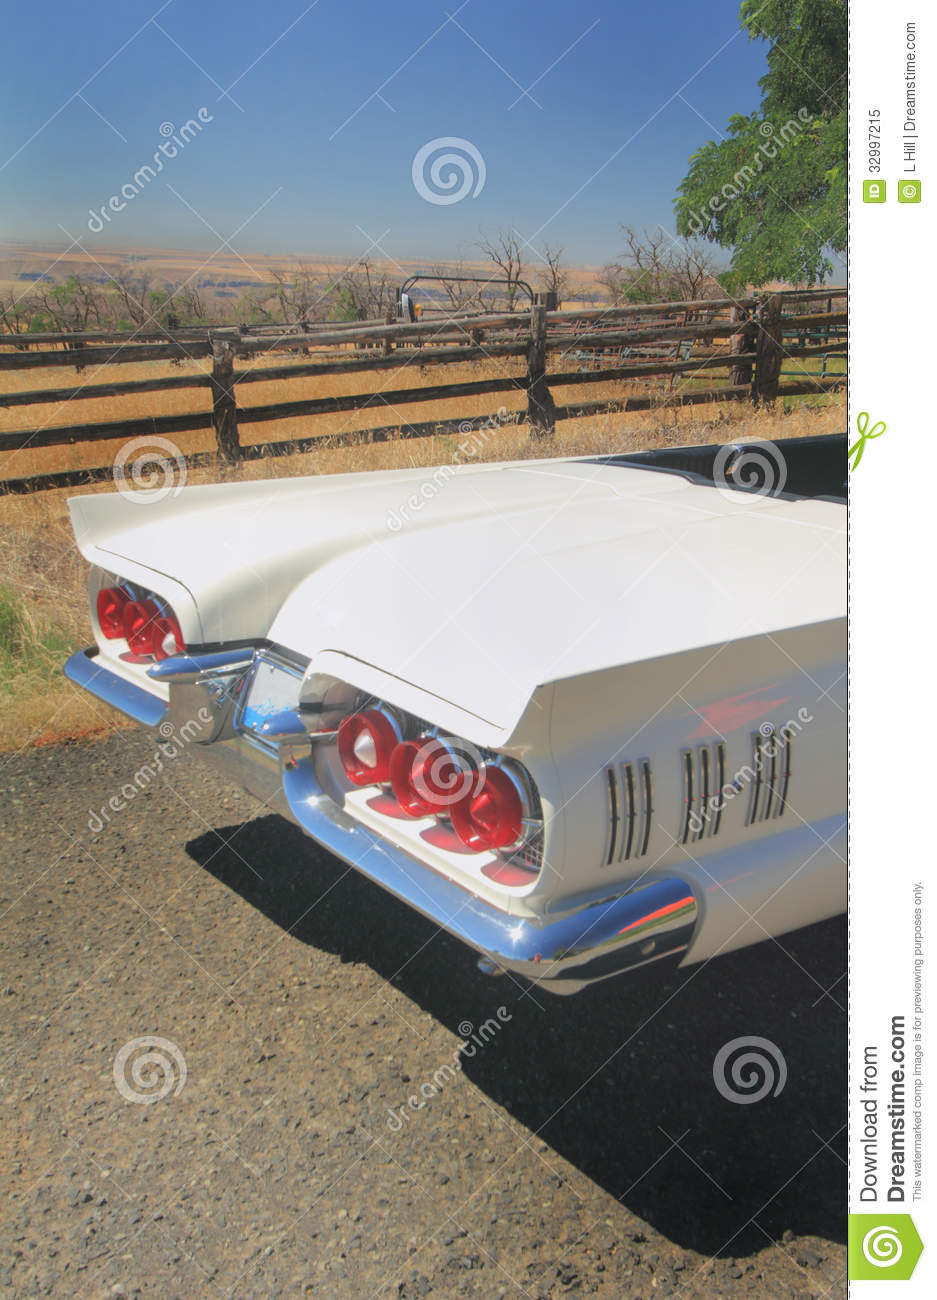 Rear End 1960 Ford Thunderbird Convertible Stock Image Image Of